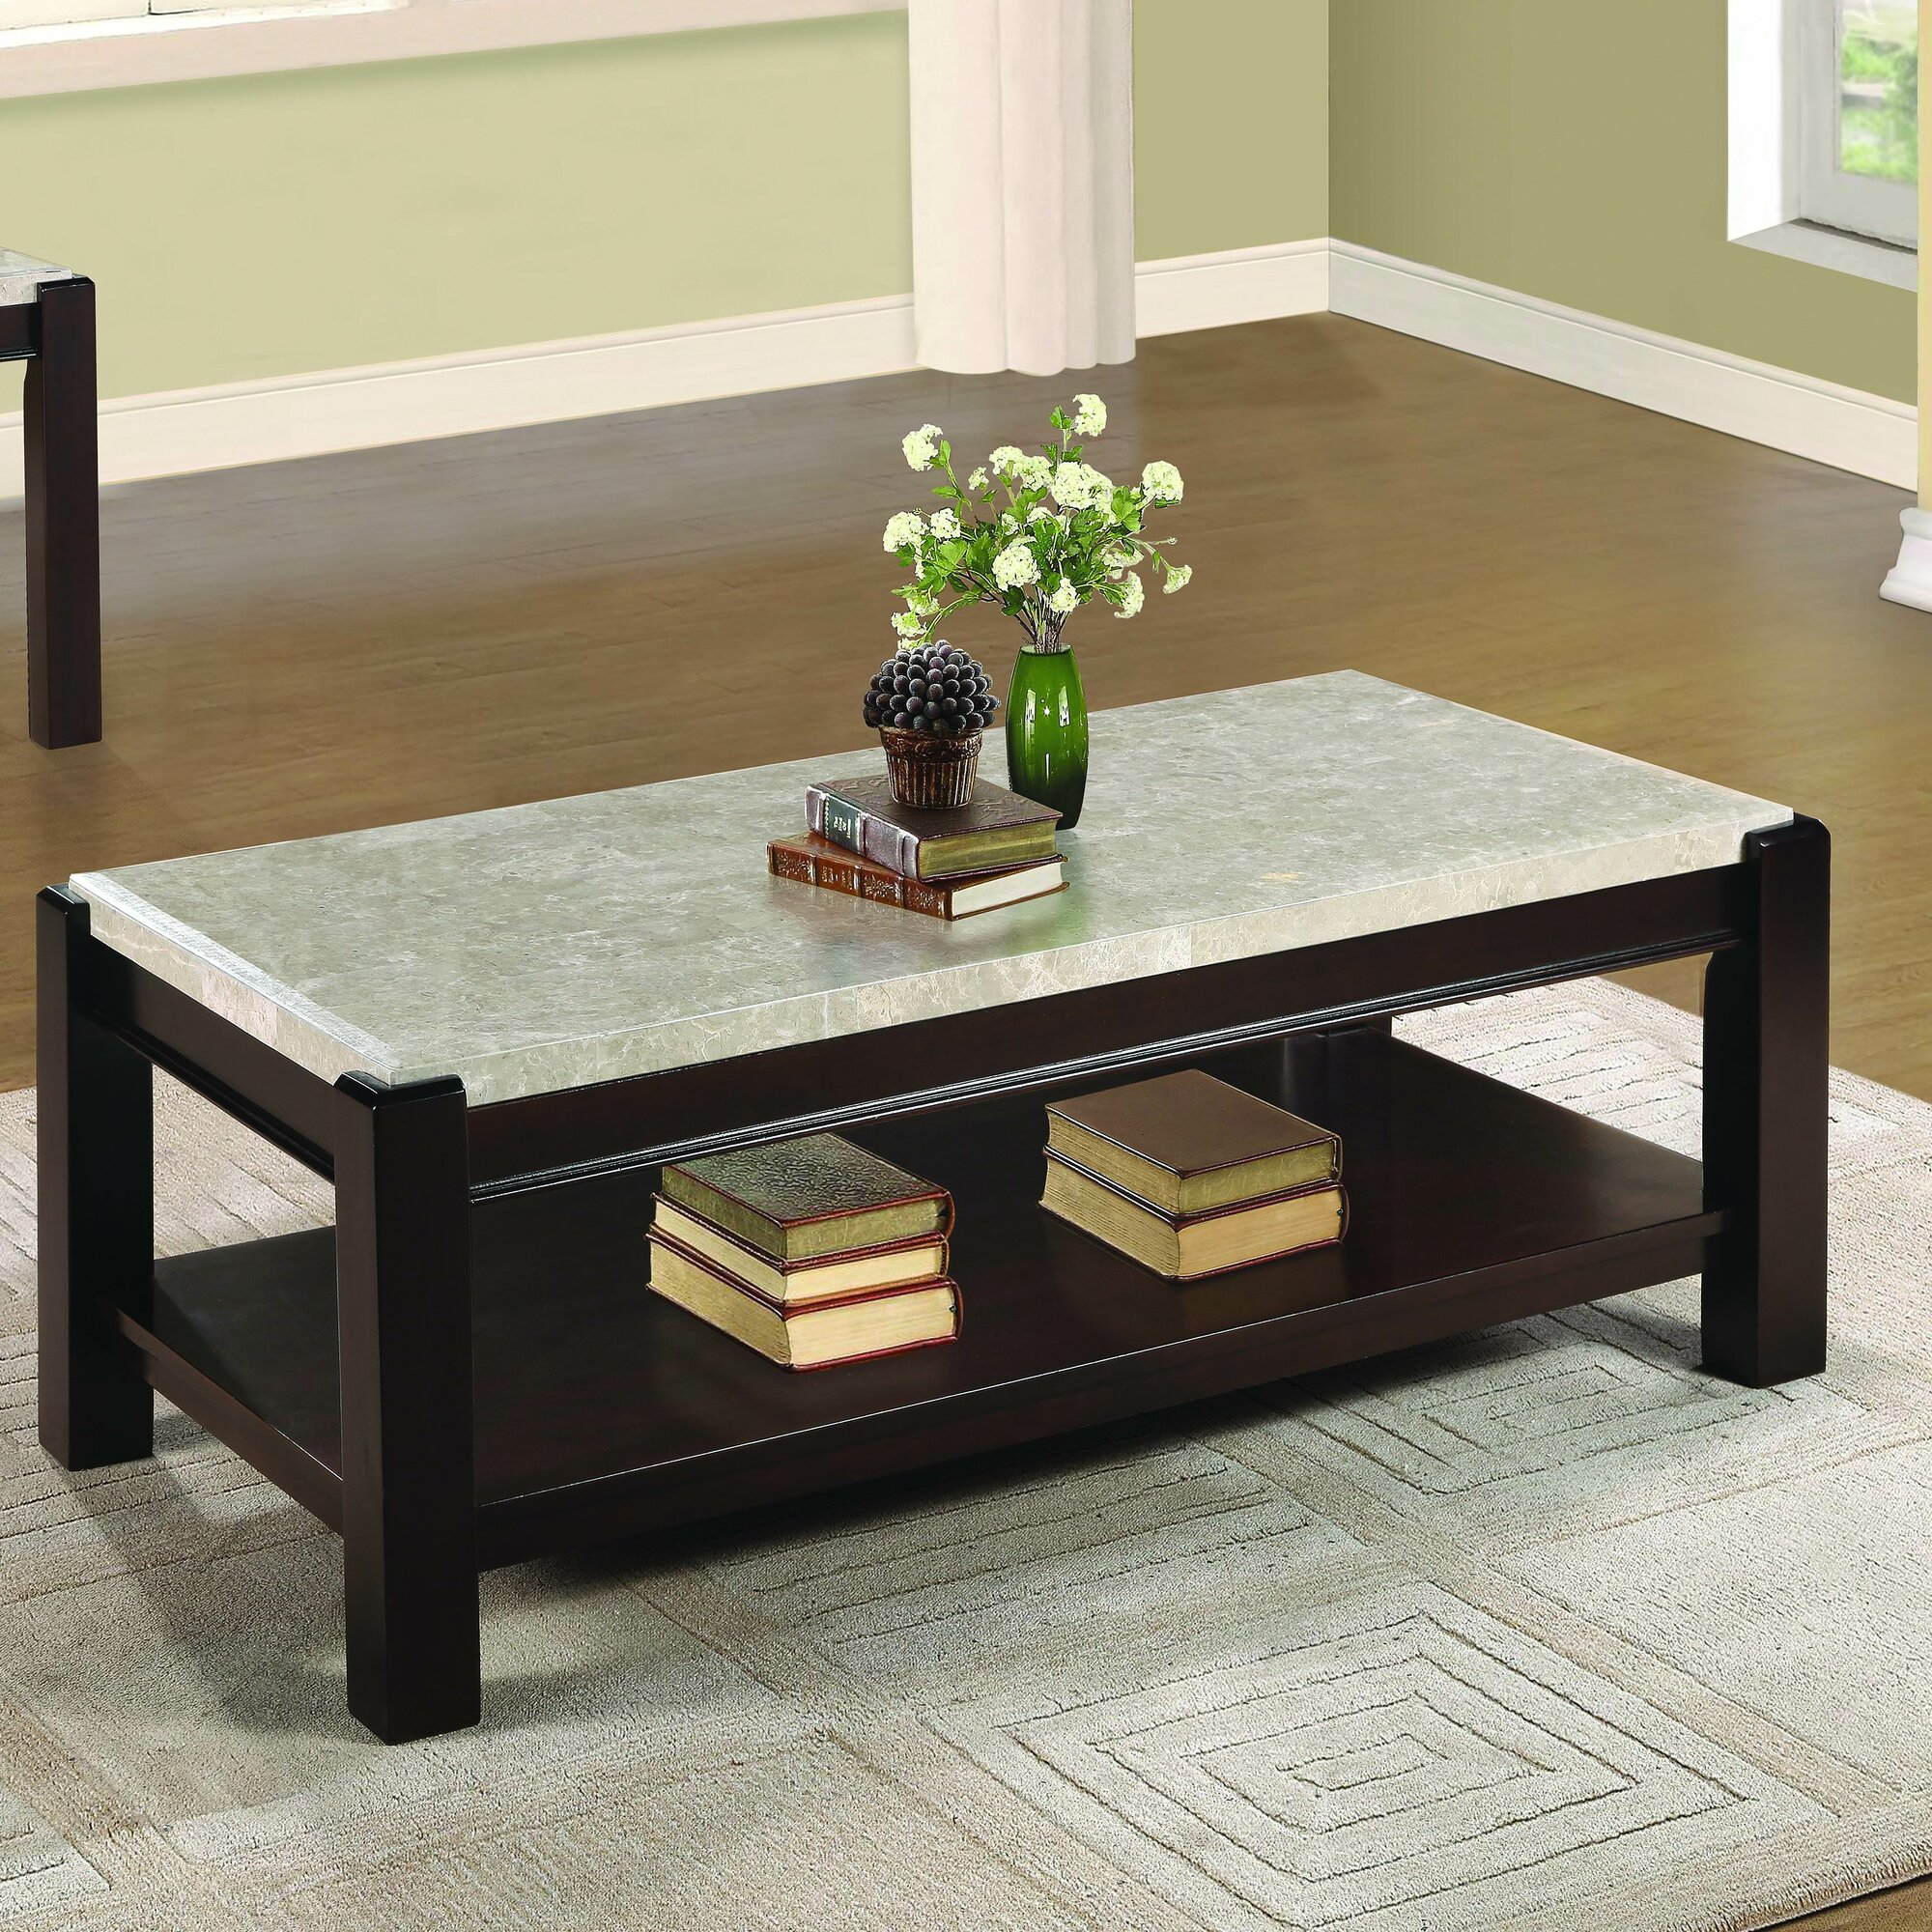 Antique square side table - Wobnar Coffee Table